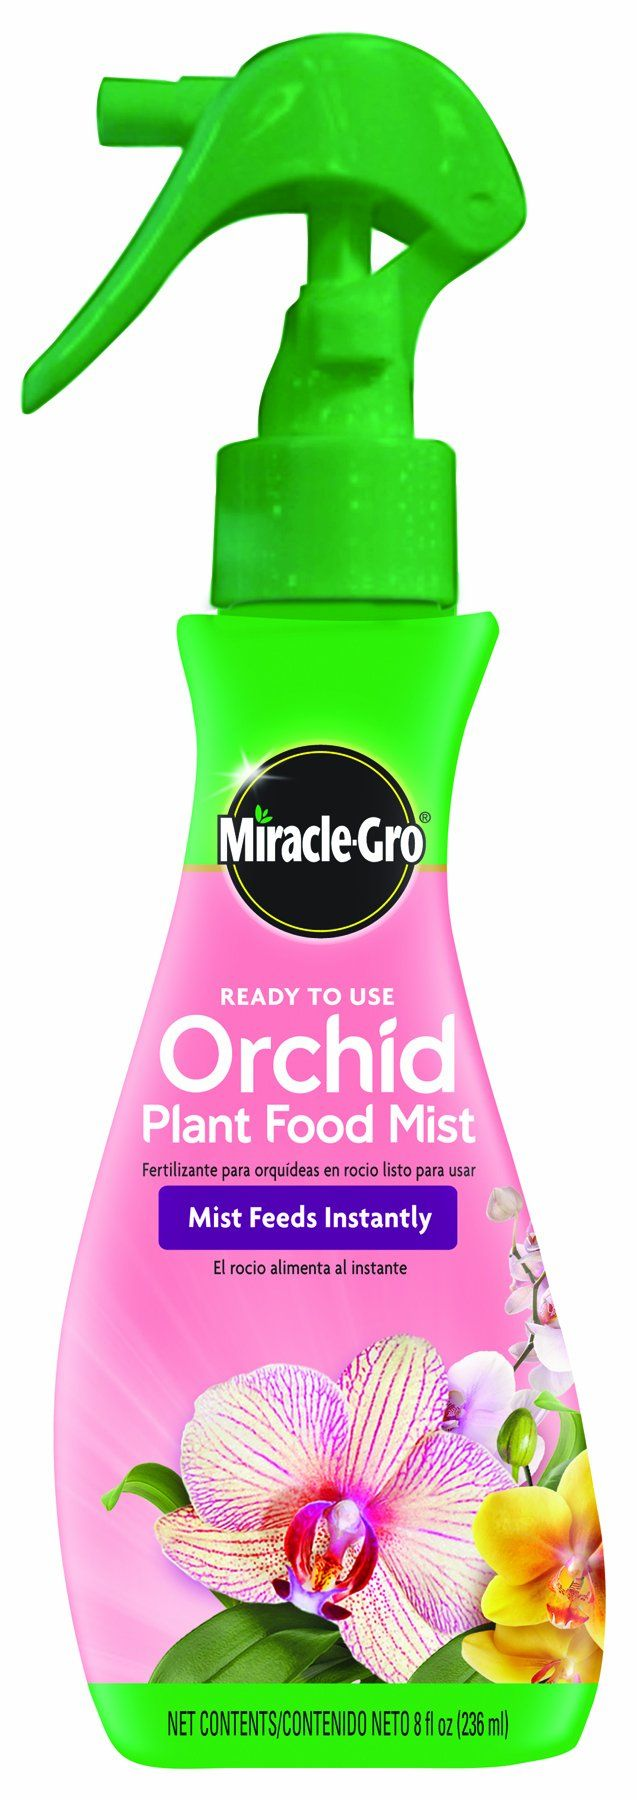 Miracle-Gro Orchid Plant Food Mist (Orchid Fertilizer) 8 oz.